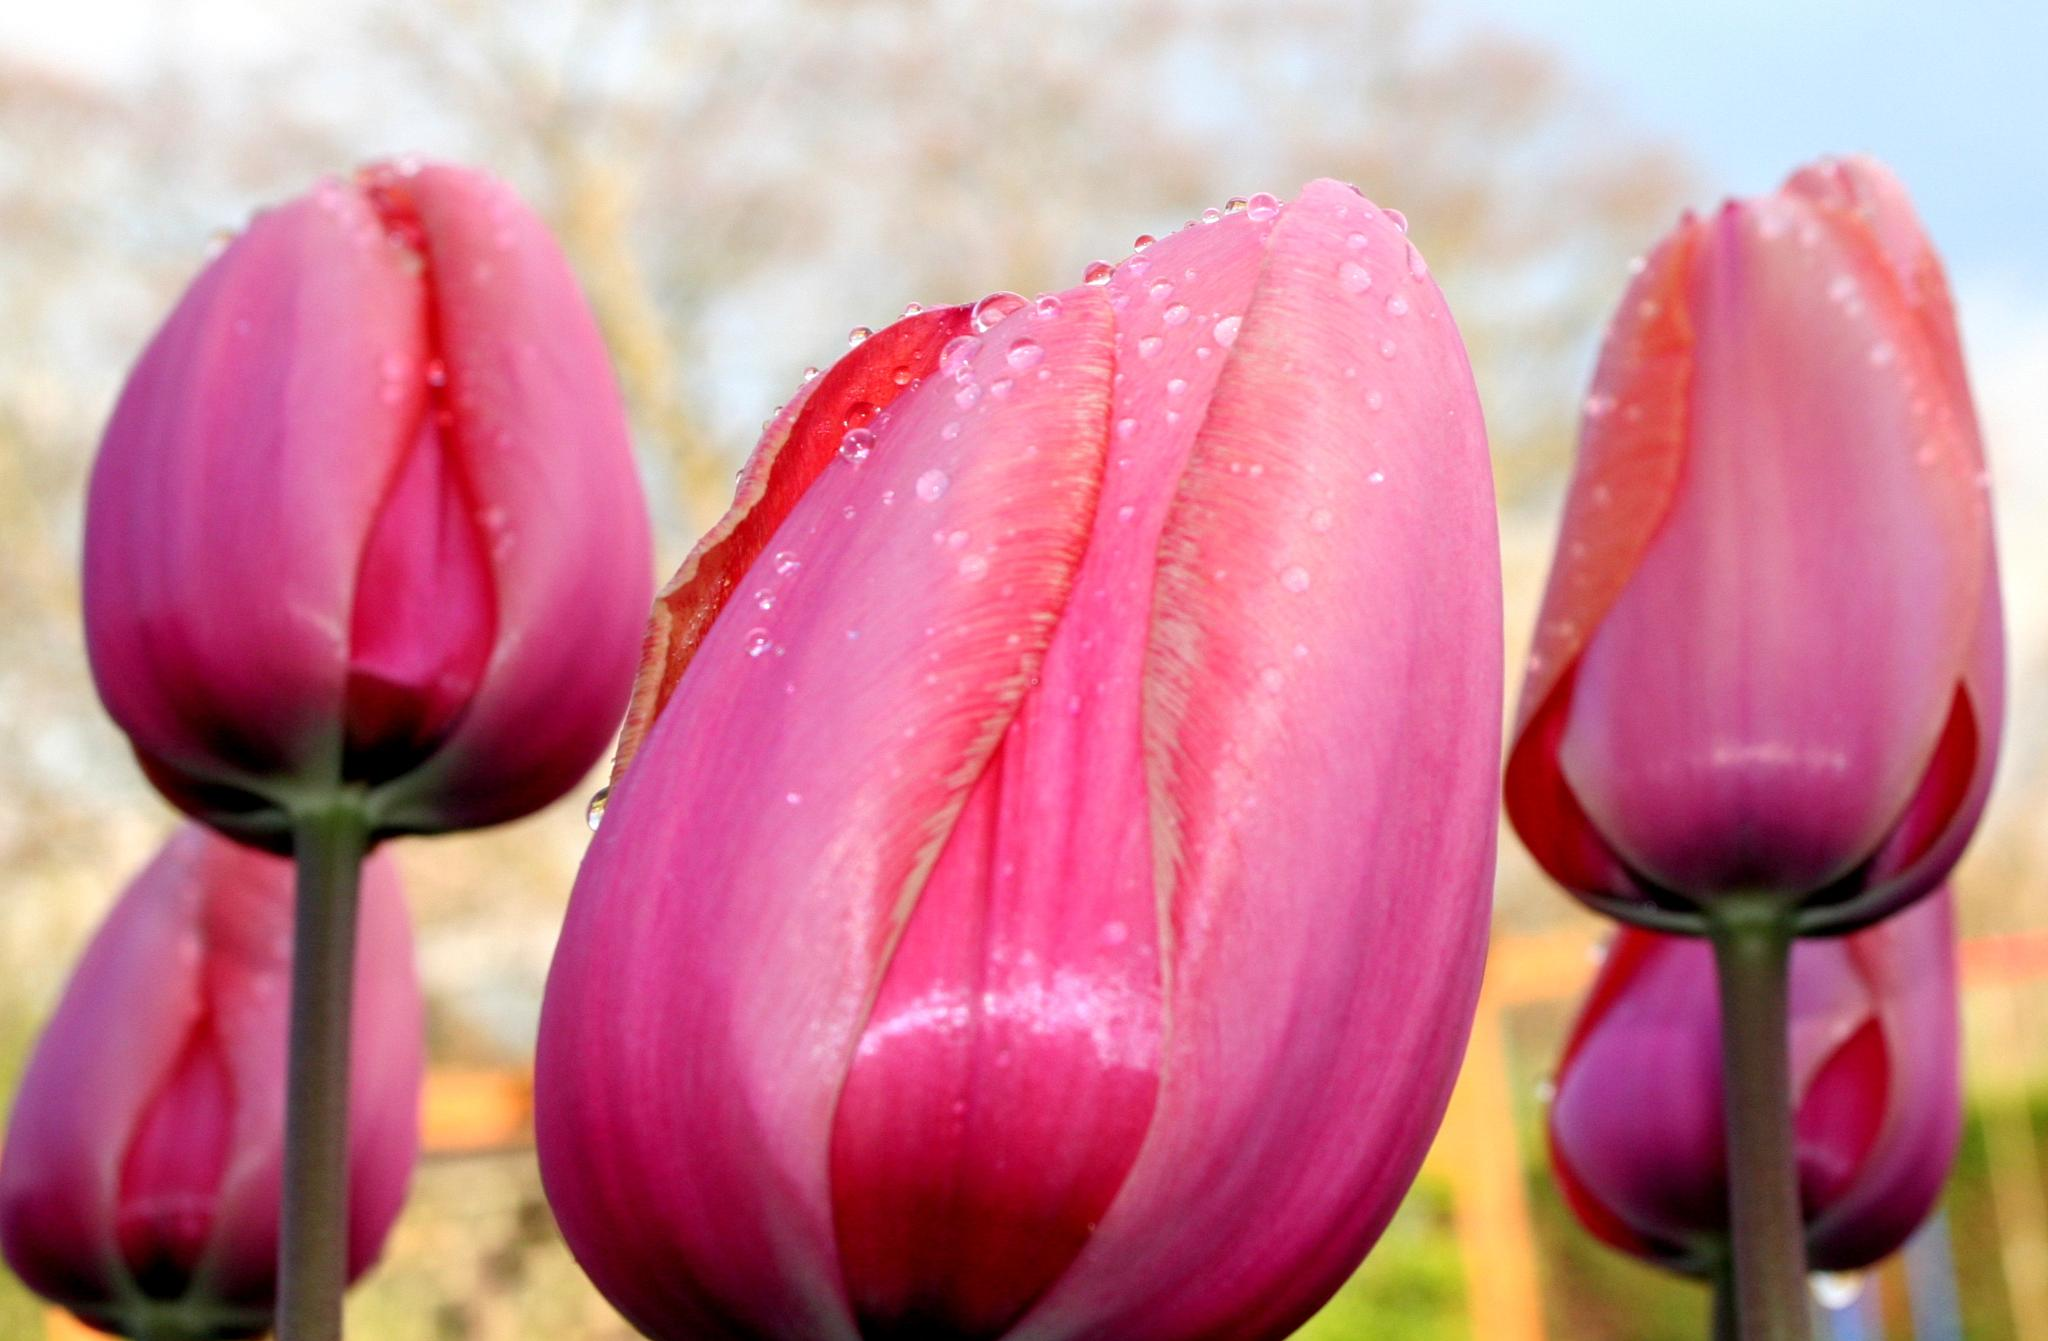 Tulips after the Rain by Tatjana Truswell